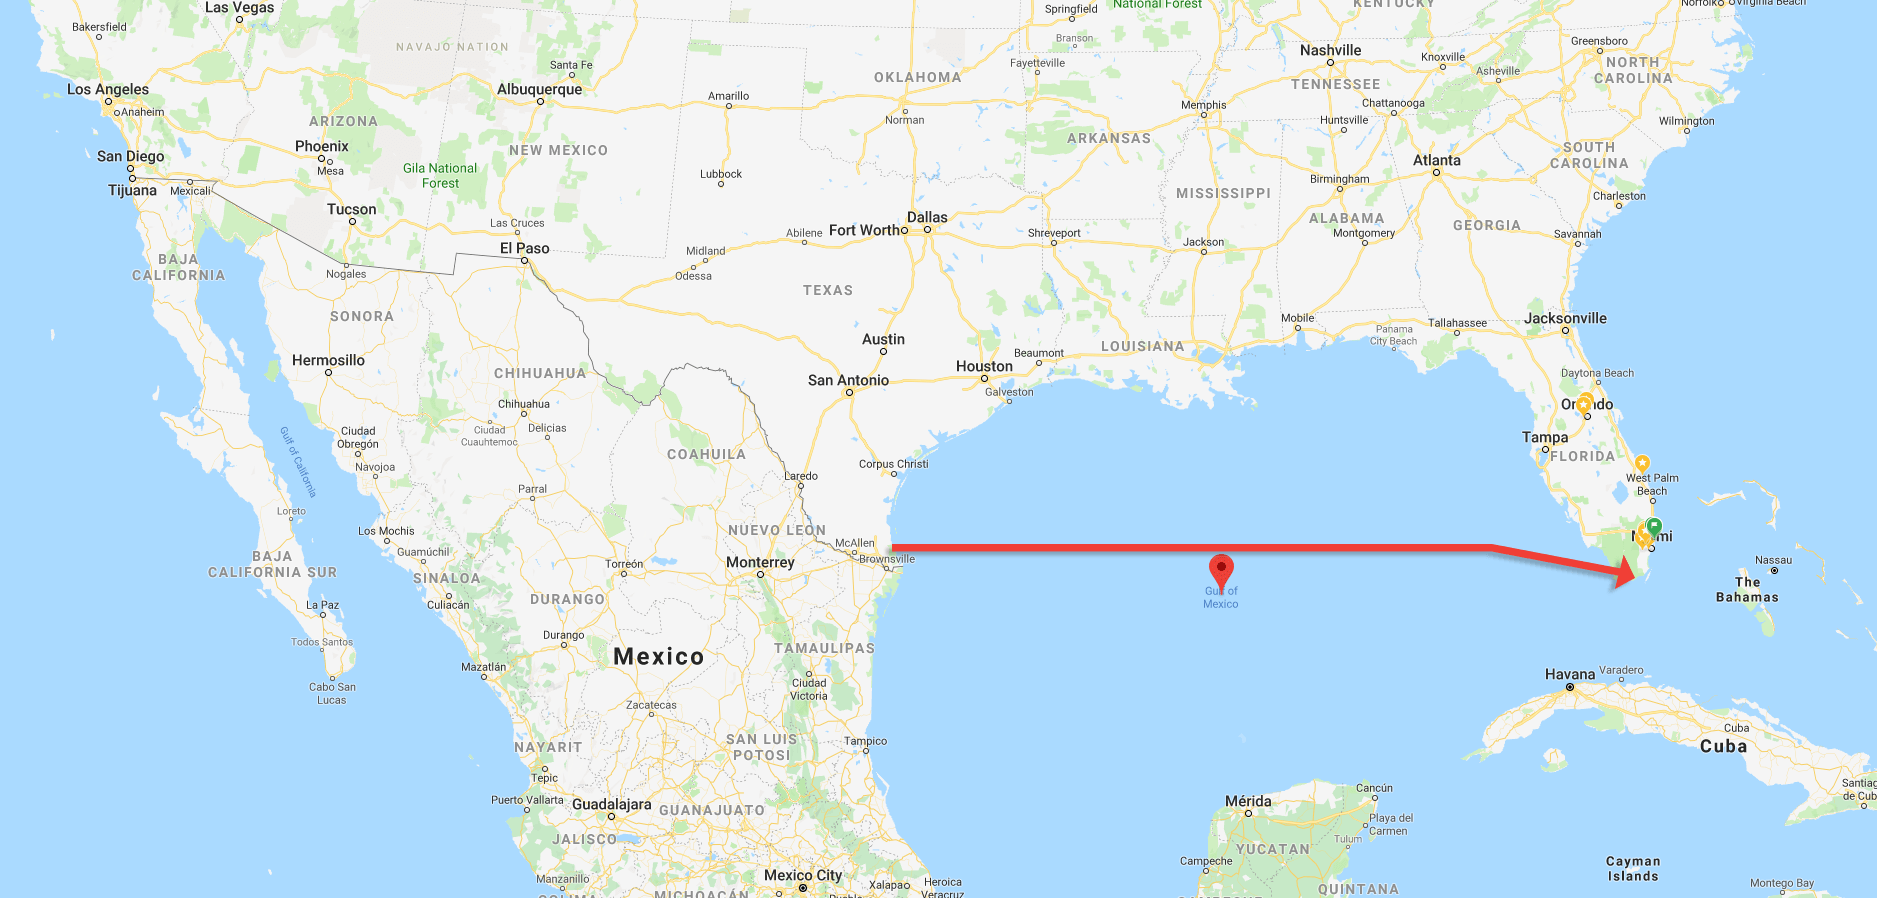 Crossing the gulf of Mexico - 1400 miles for a cancer cure